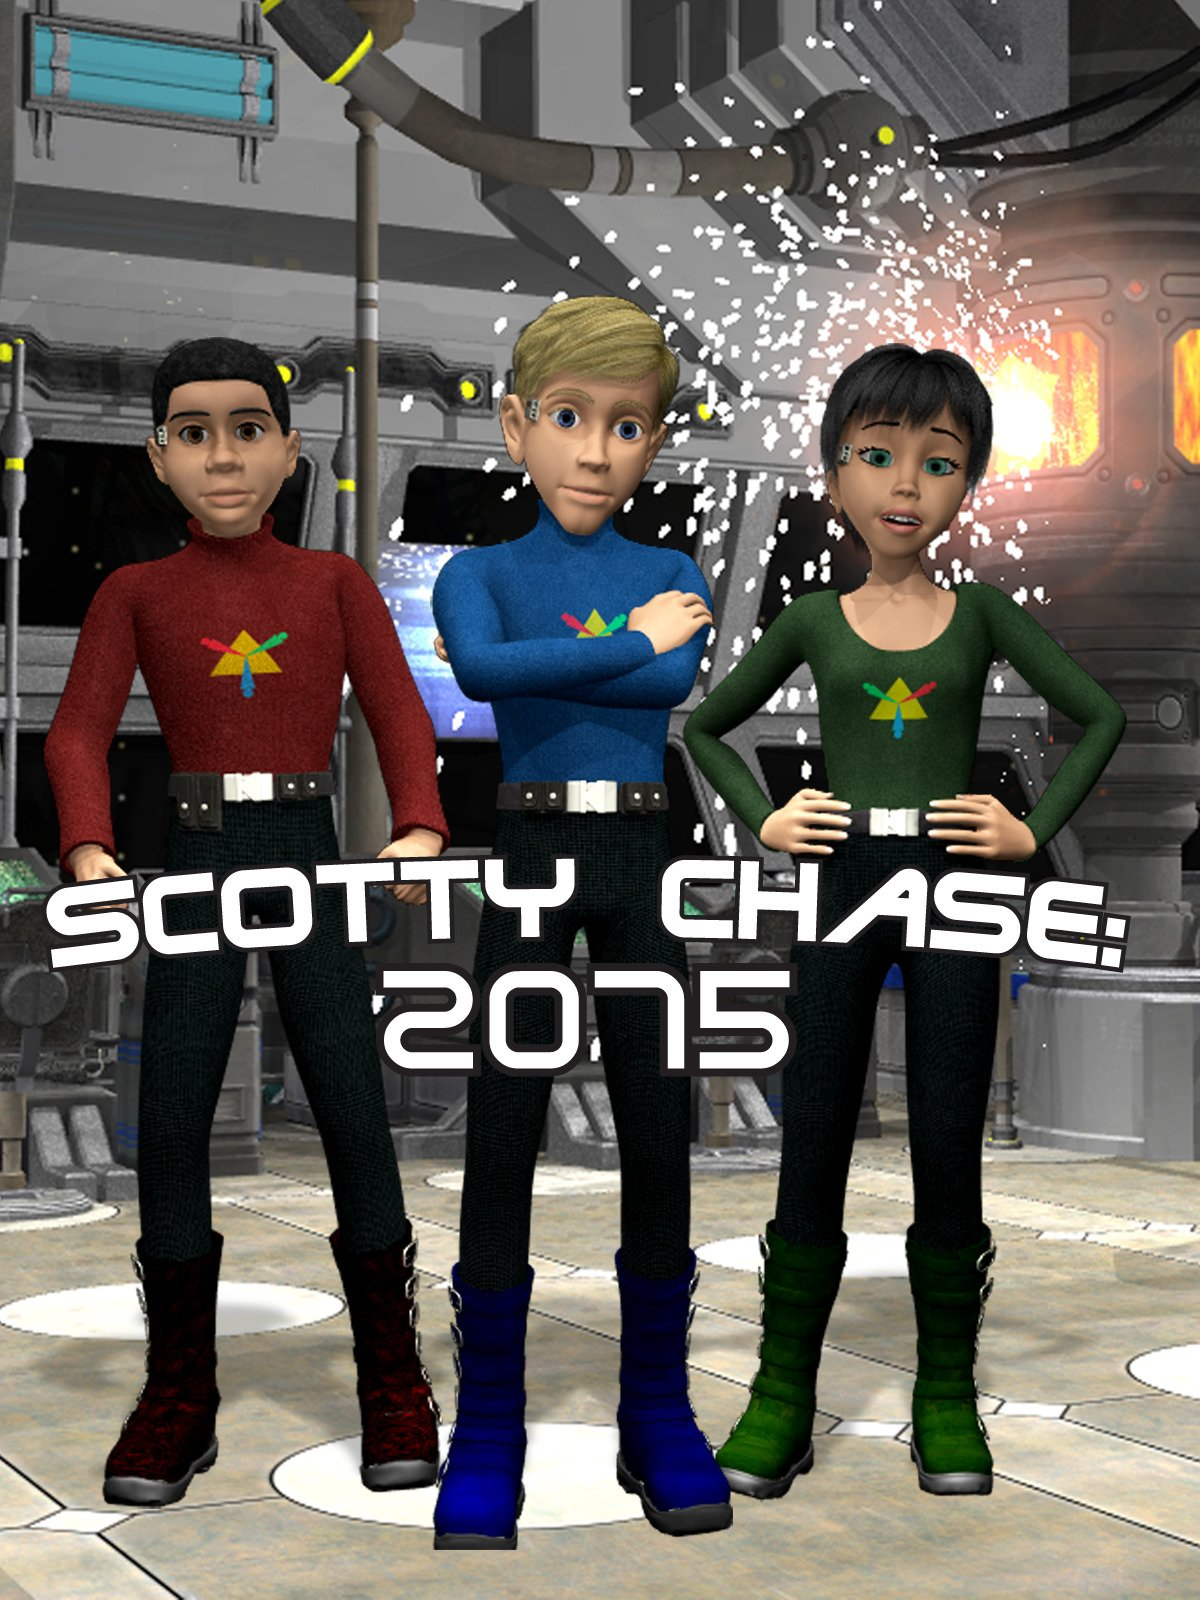 Scotty Chase 2075 on Amazon Prime Instant Video UK